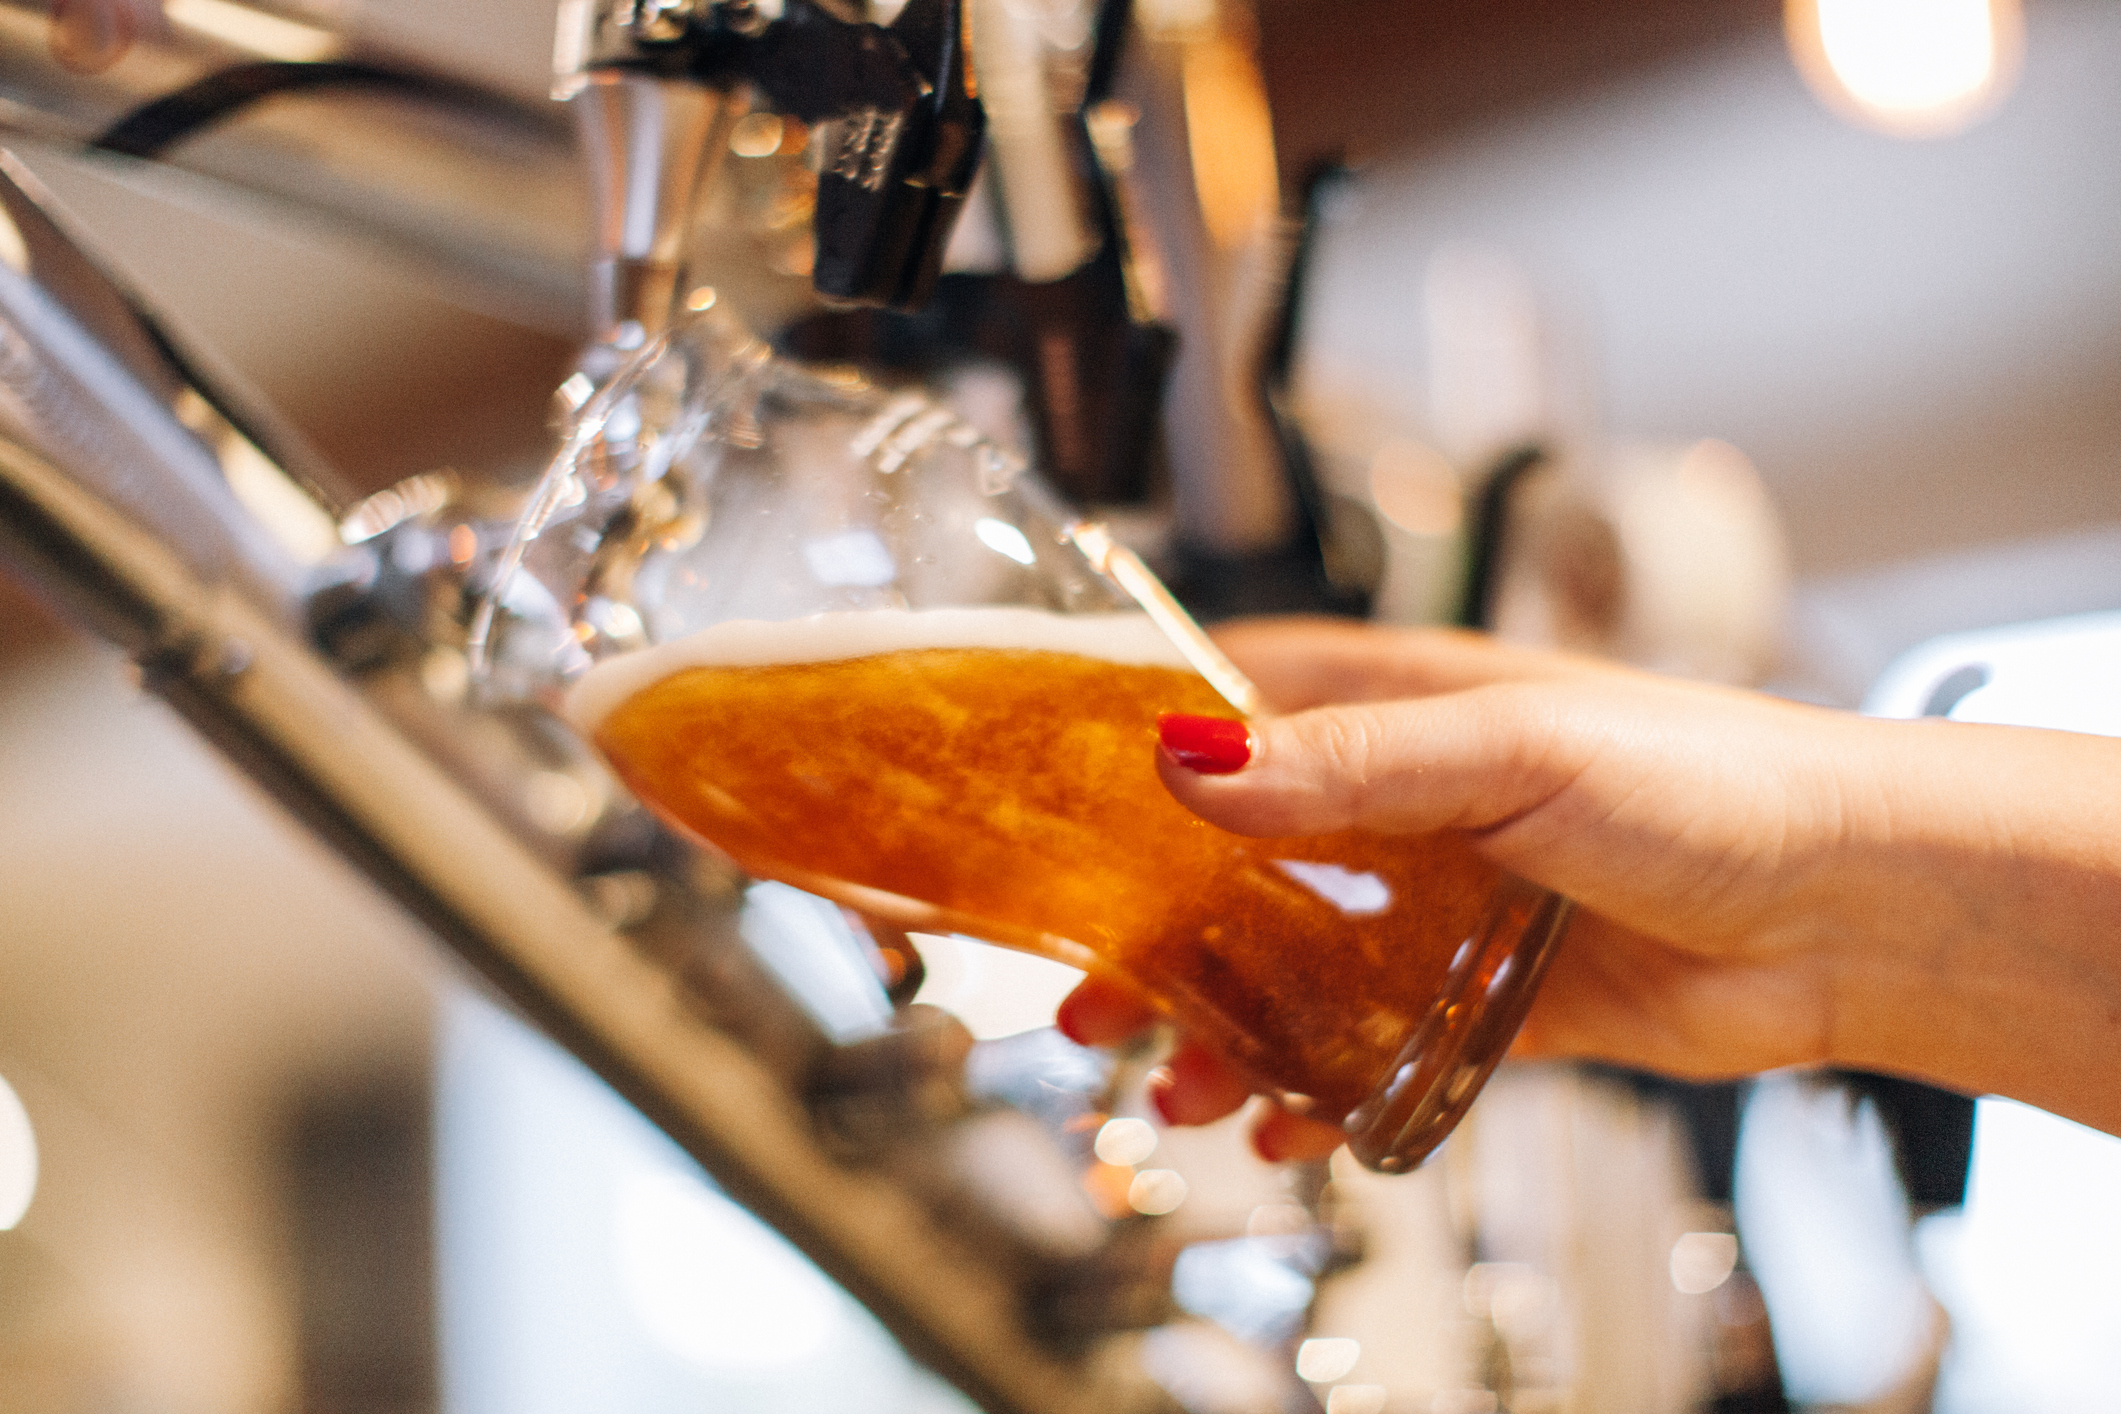 New Year's Beer: Skip the Champagne and Drink These IPAs Instead